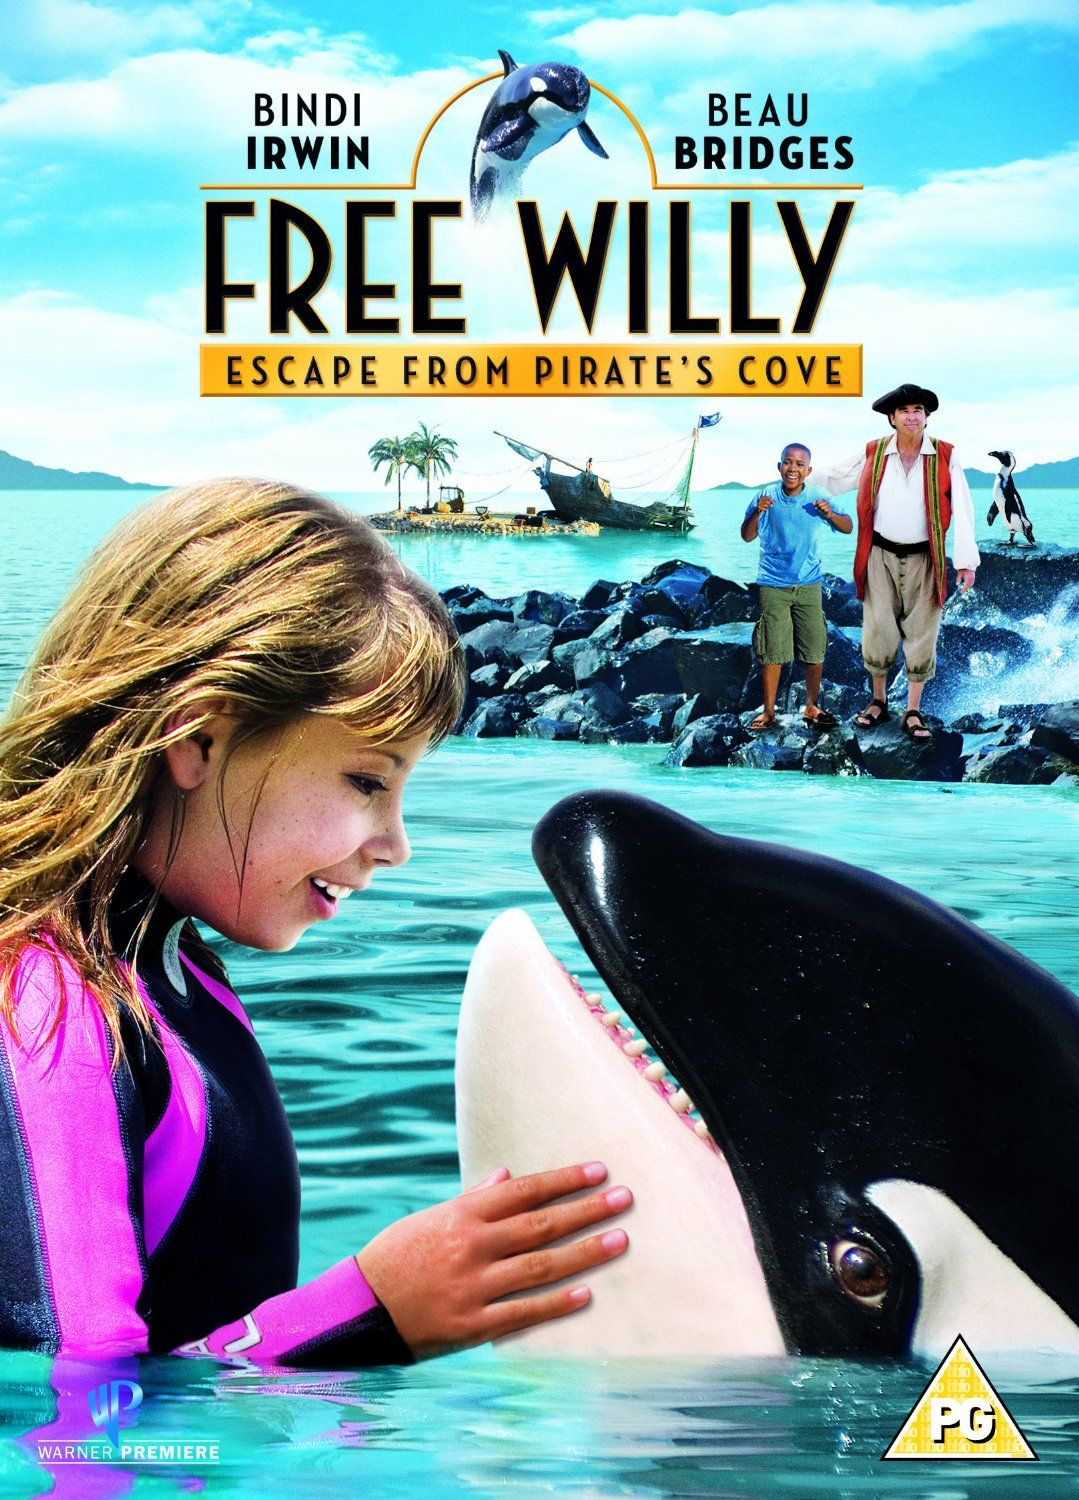 Free Willy 4: Escape from Pirate's Cove (2010)